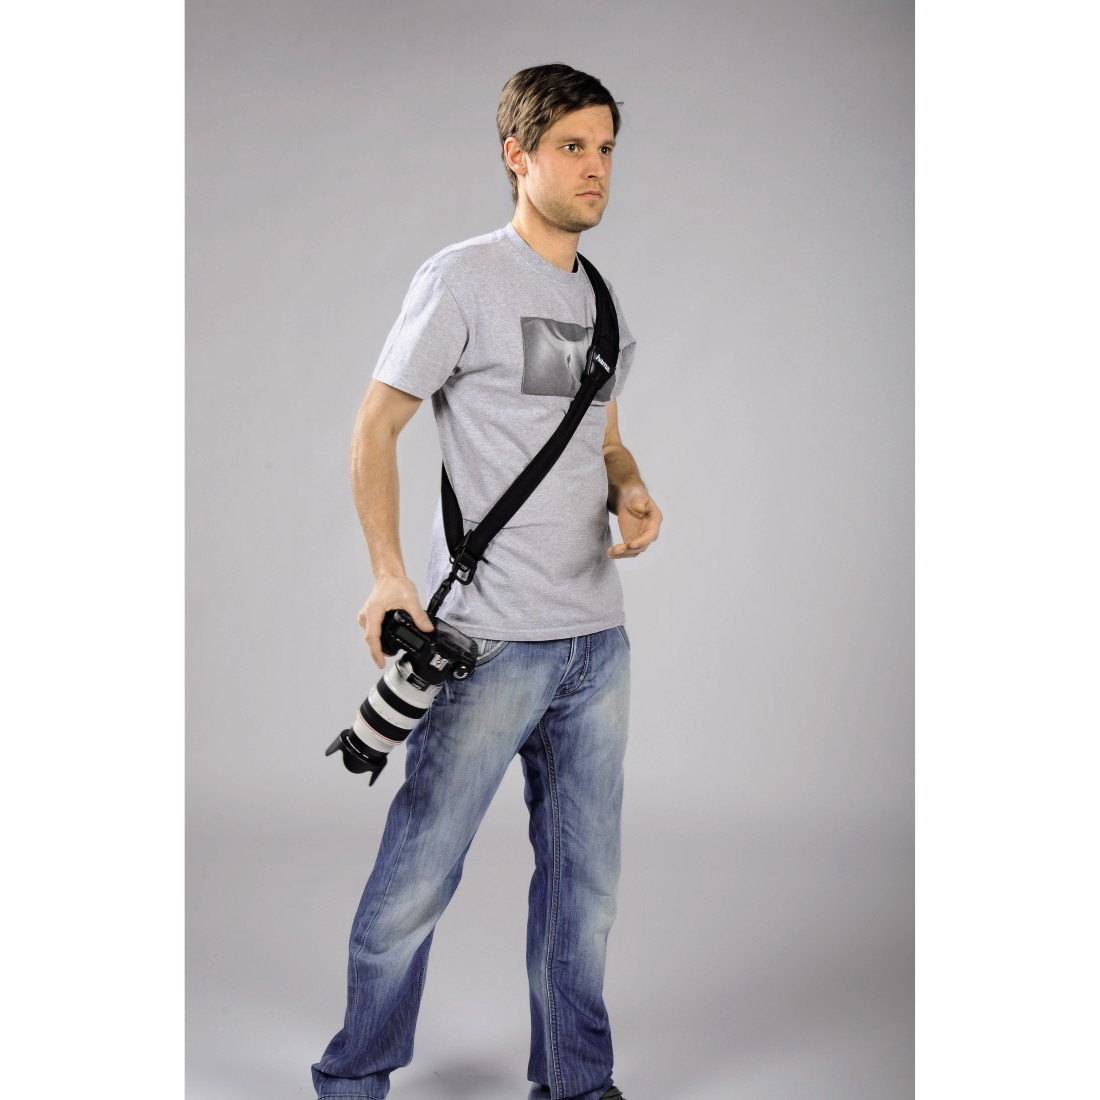 "awx High-Res Appliance - Hama, Draagriem ""Quick Shoot Strap"" voor SLR-camera's"